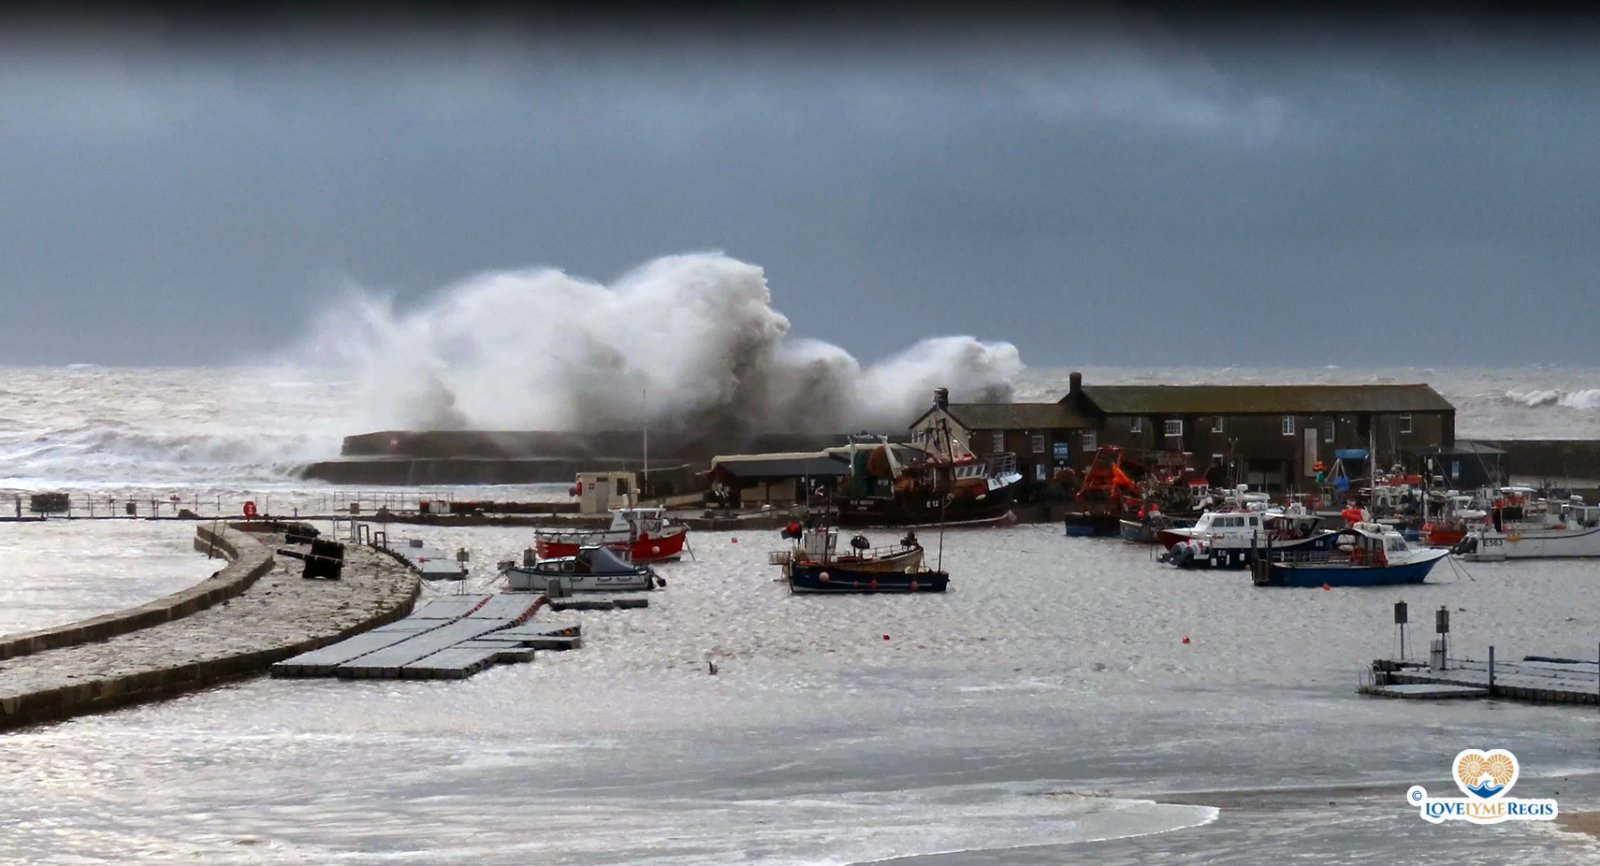 Huge waves during storm at Cobb Lyme Regis